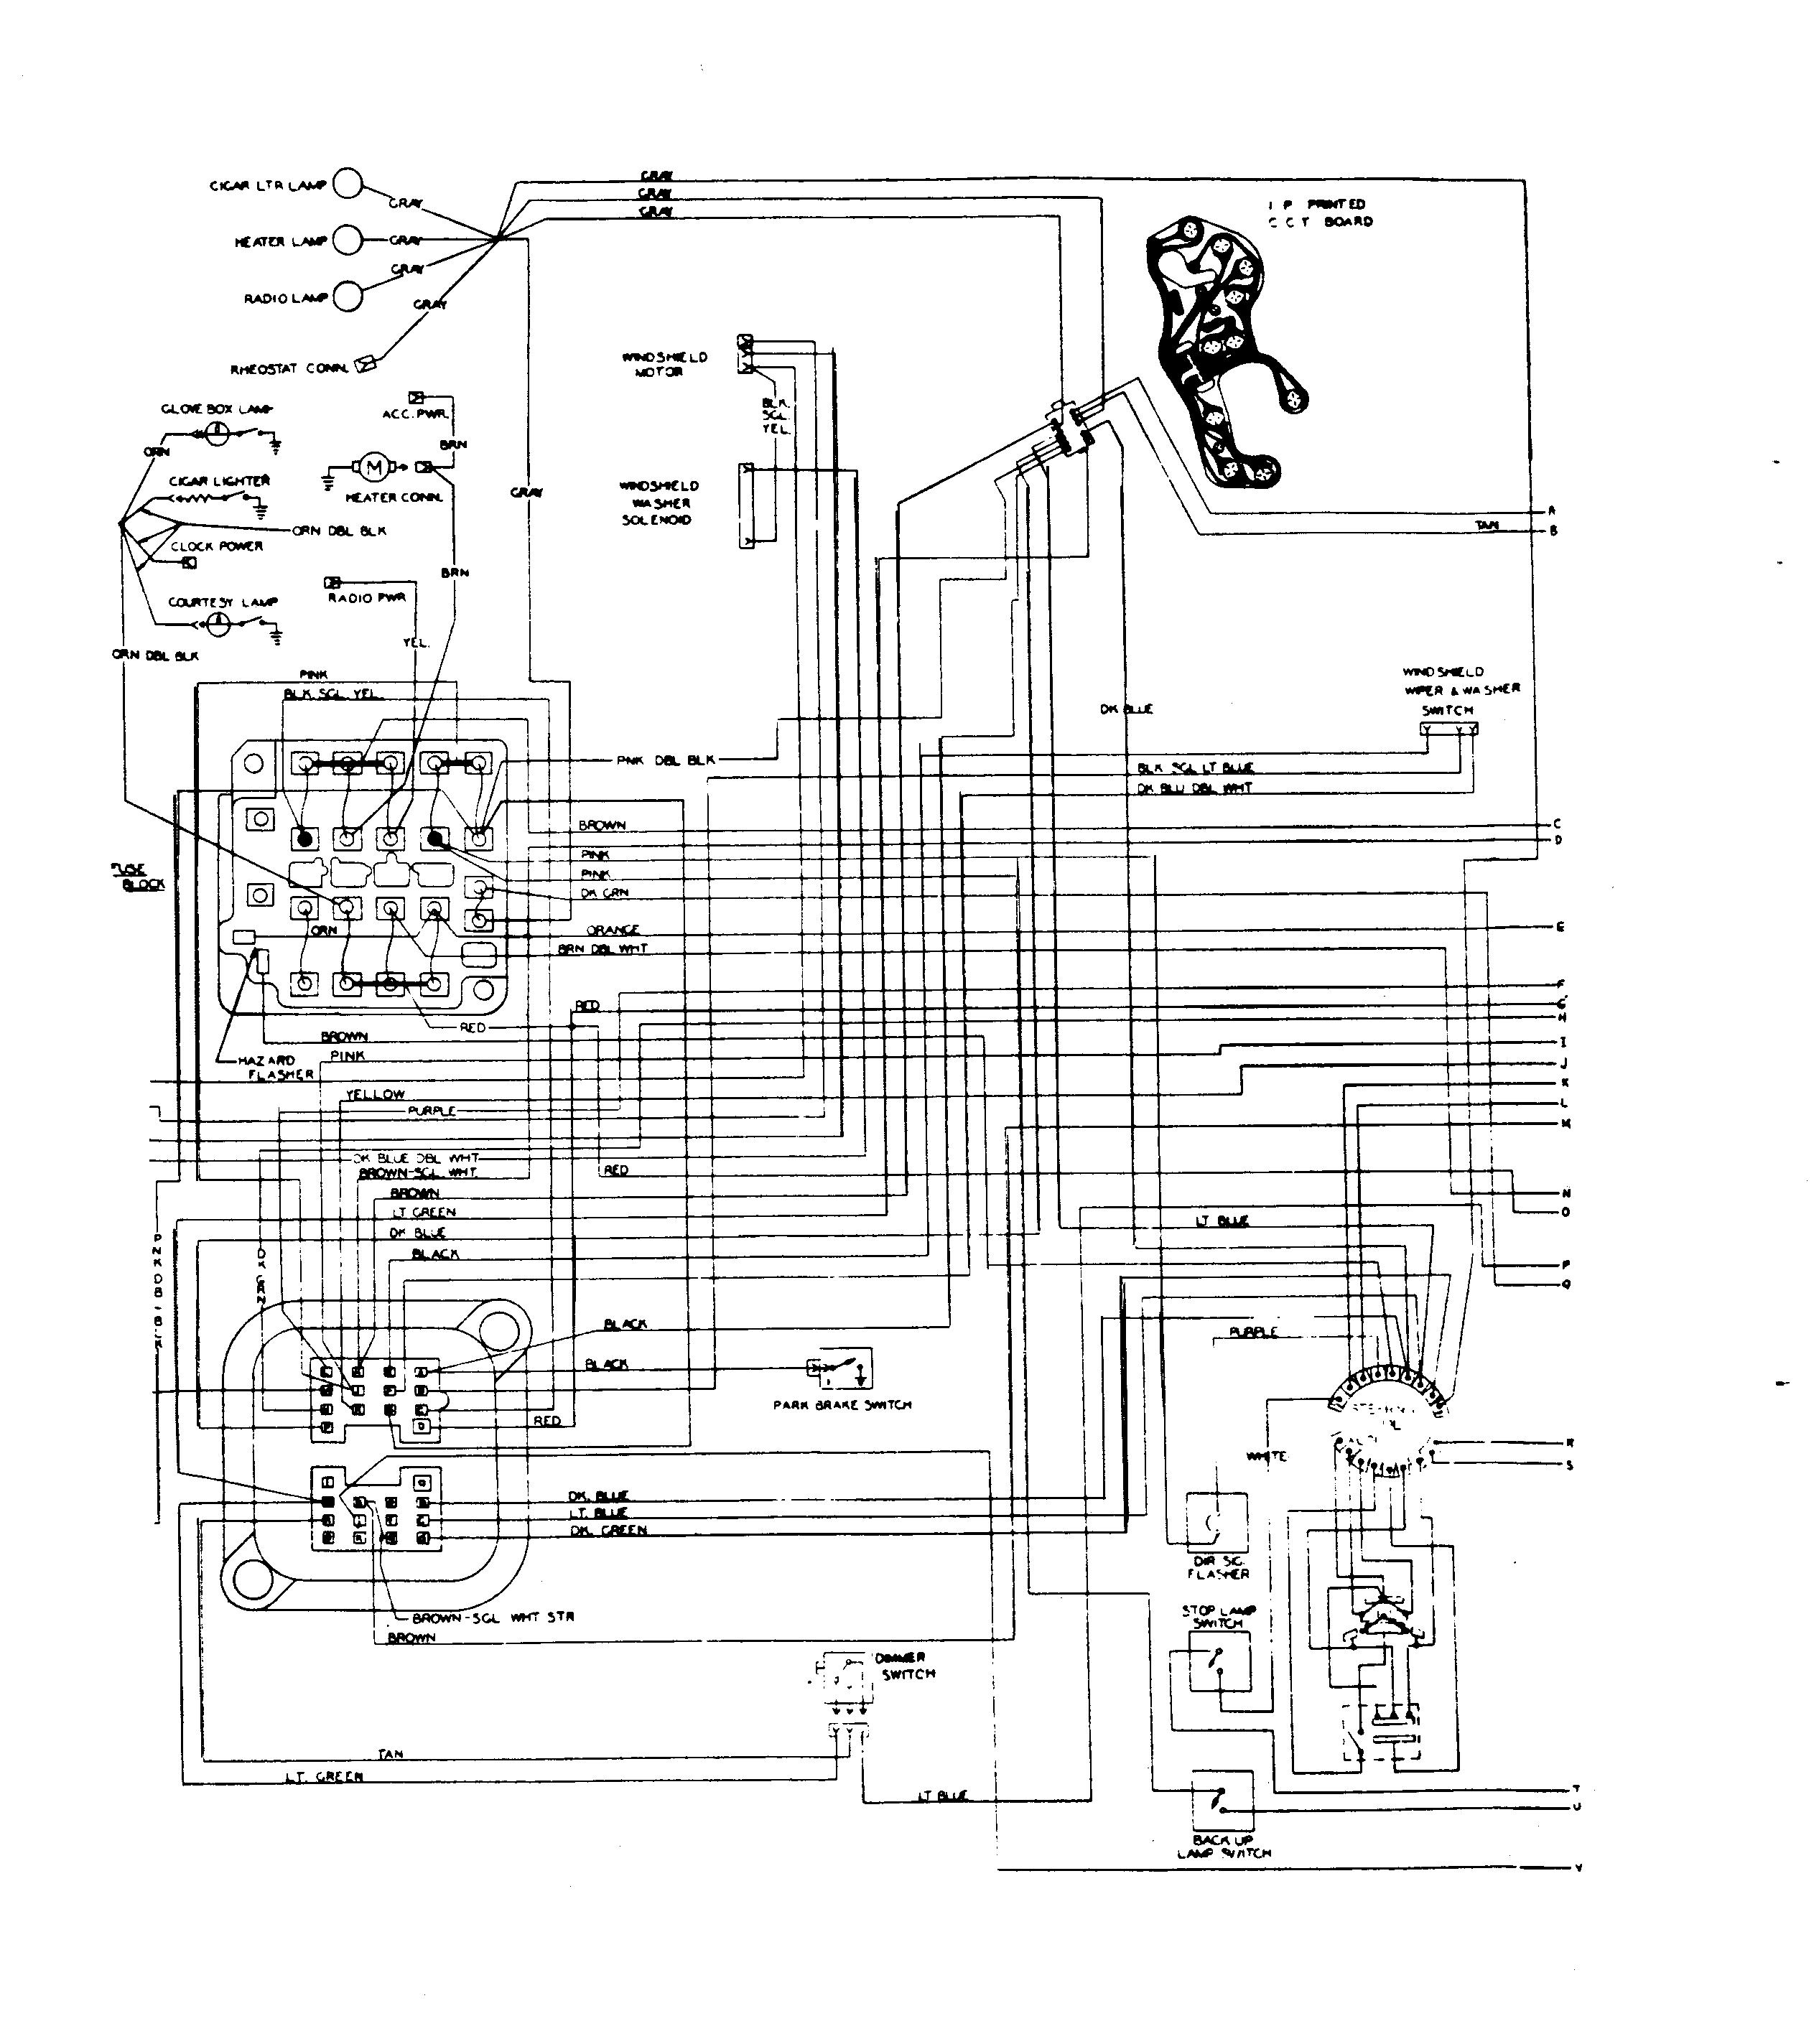 1967 firebird headlight wiring diagram solidfonts 1980 firebird headlight switch wiring diagram automotive